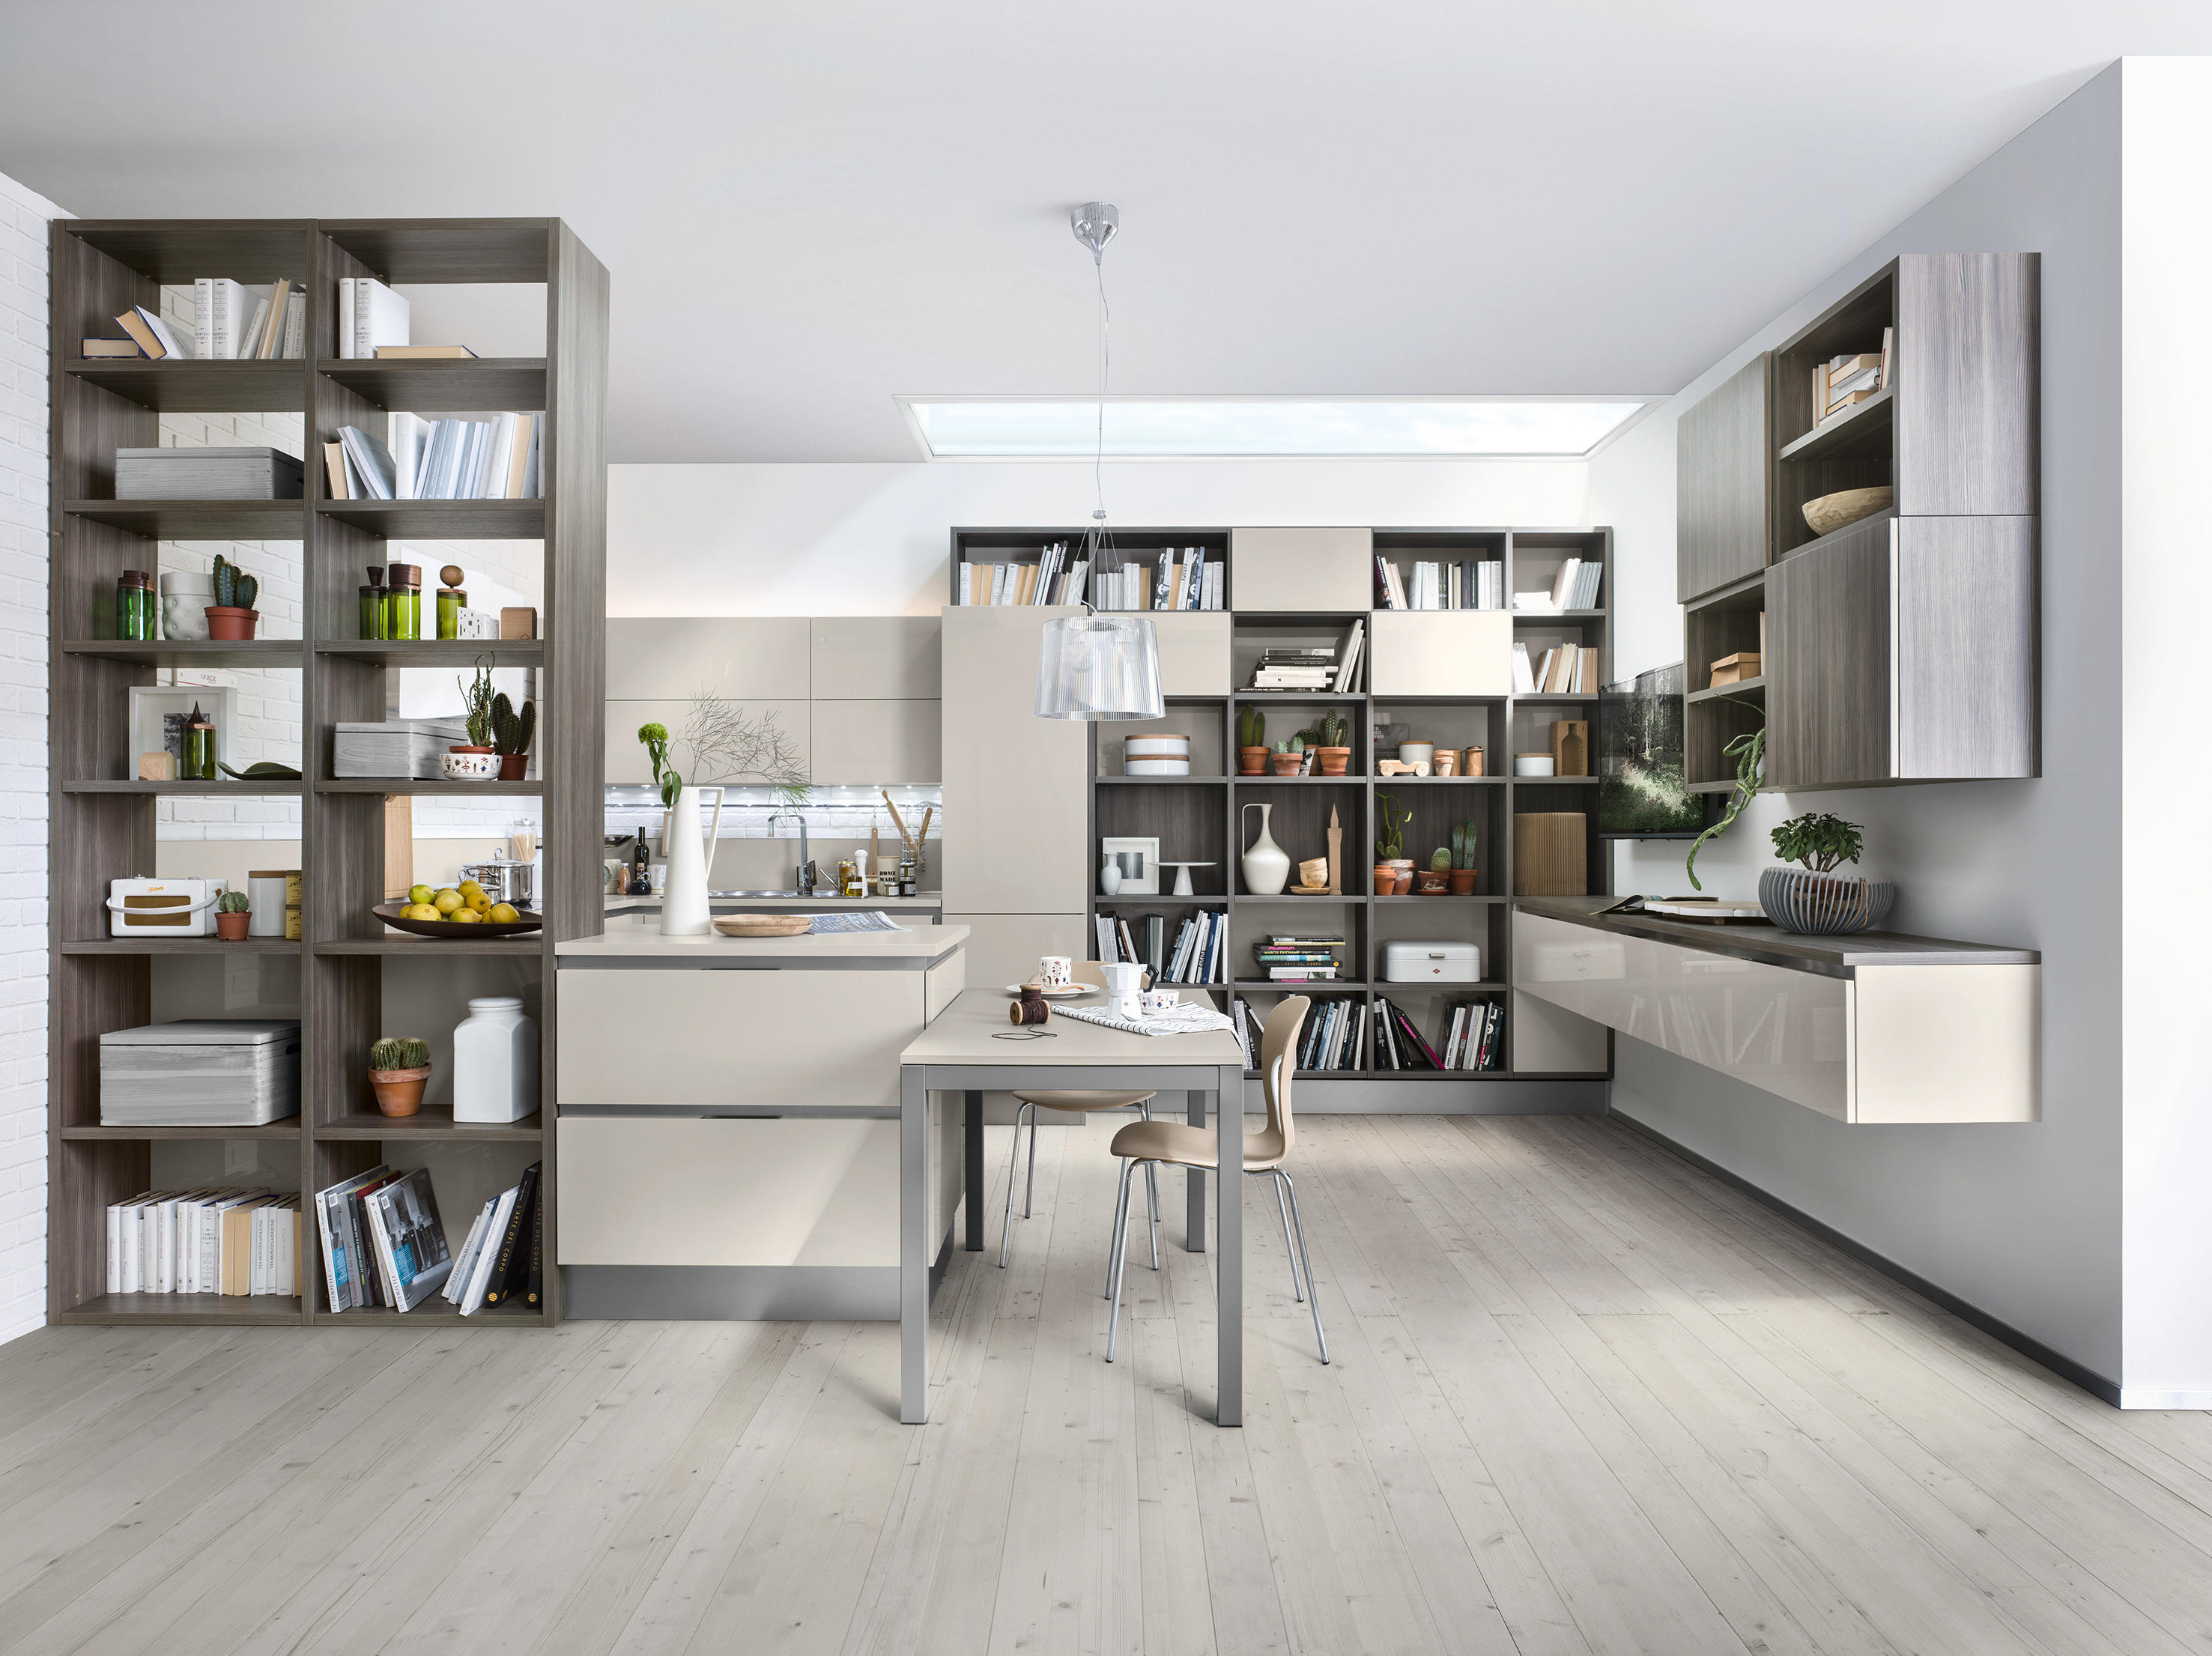 Living fitted kitchens from veneta cucine architonic for Cucine living prezzi